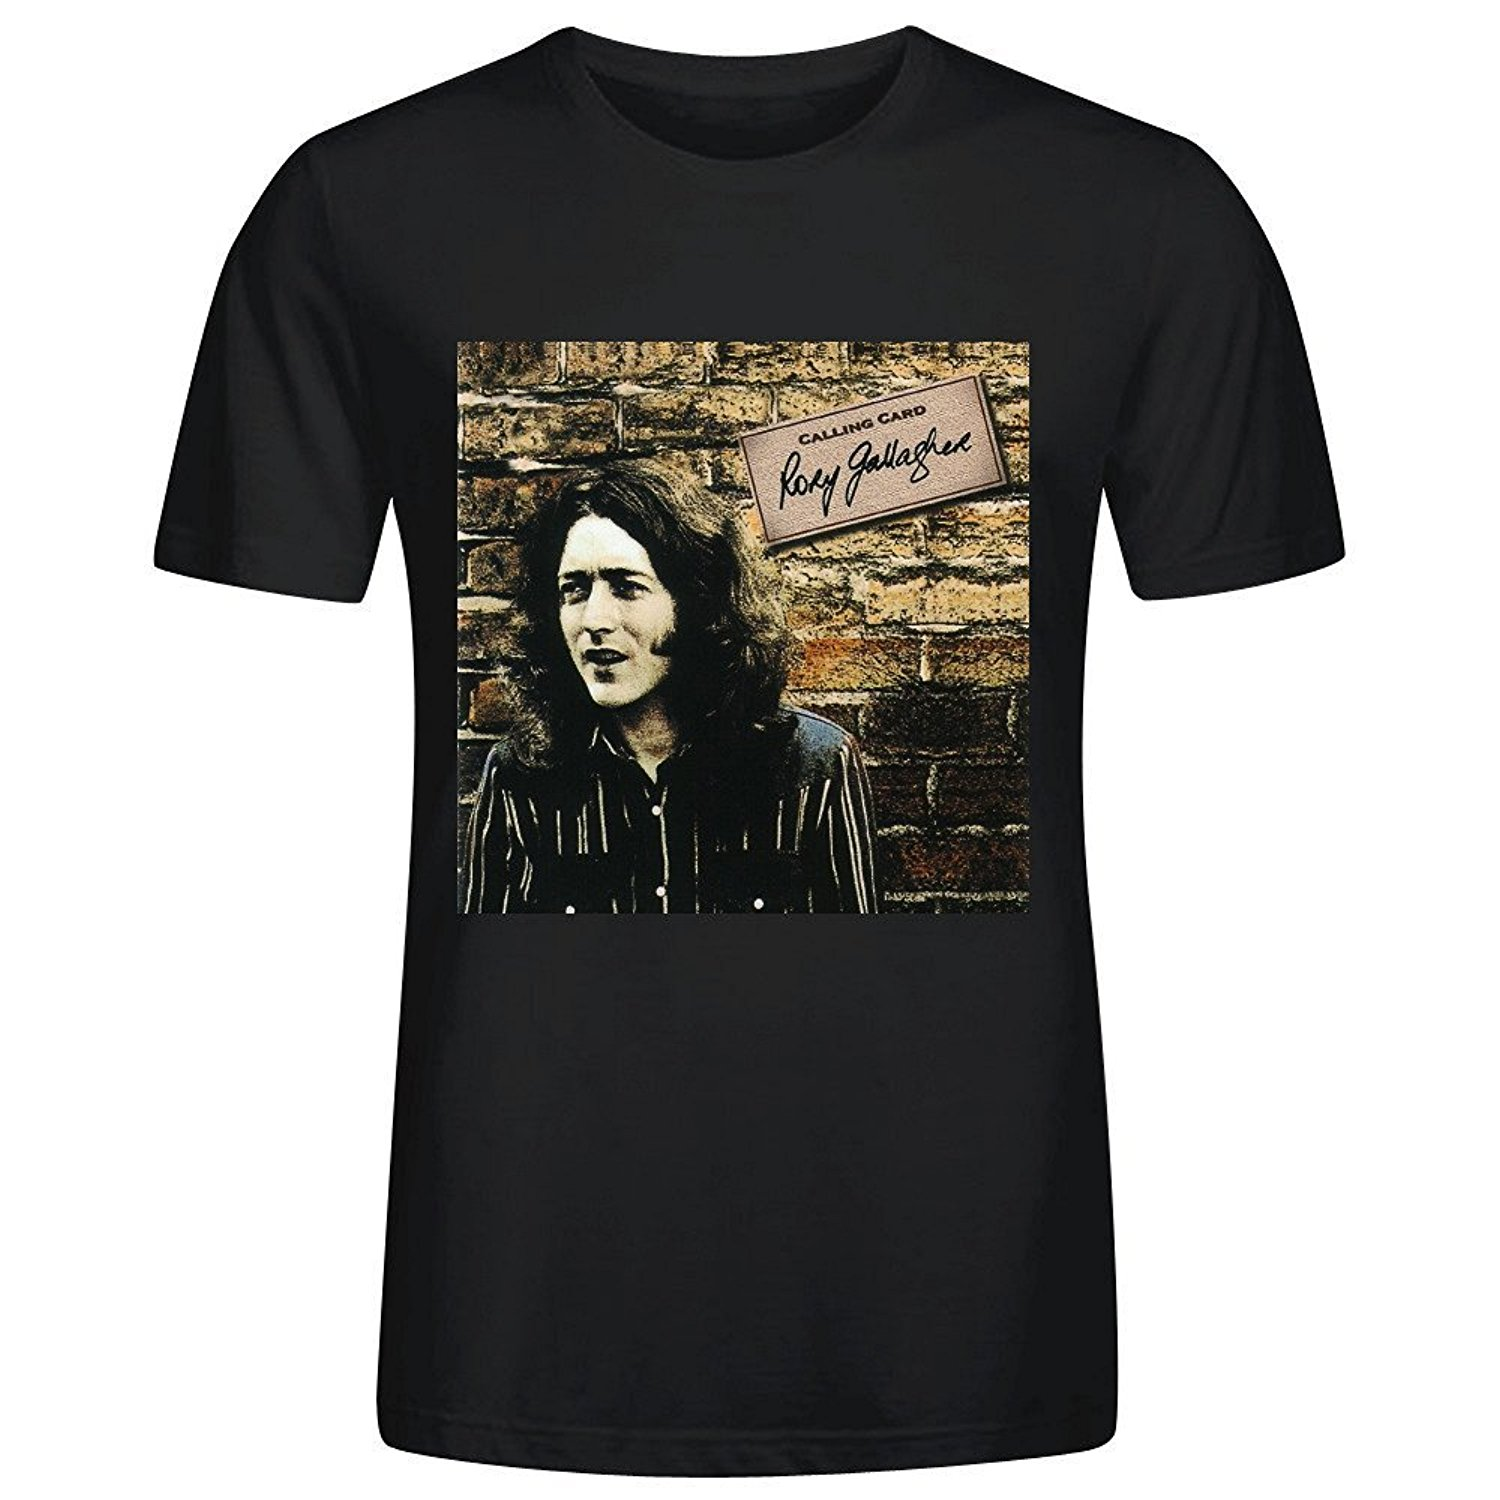 Shirt design card - For Man Hipster O Neck Causal Cool Tops Rory Gallagher Calling Card T Shirts Design O Neck